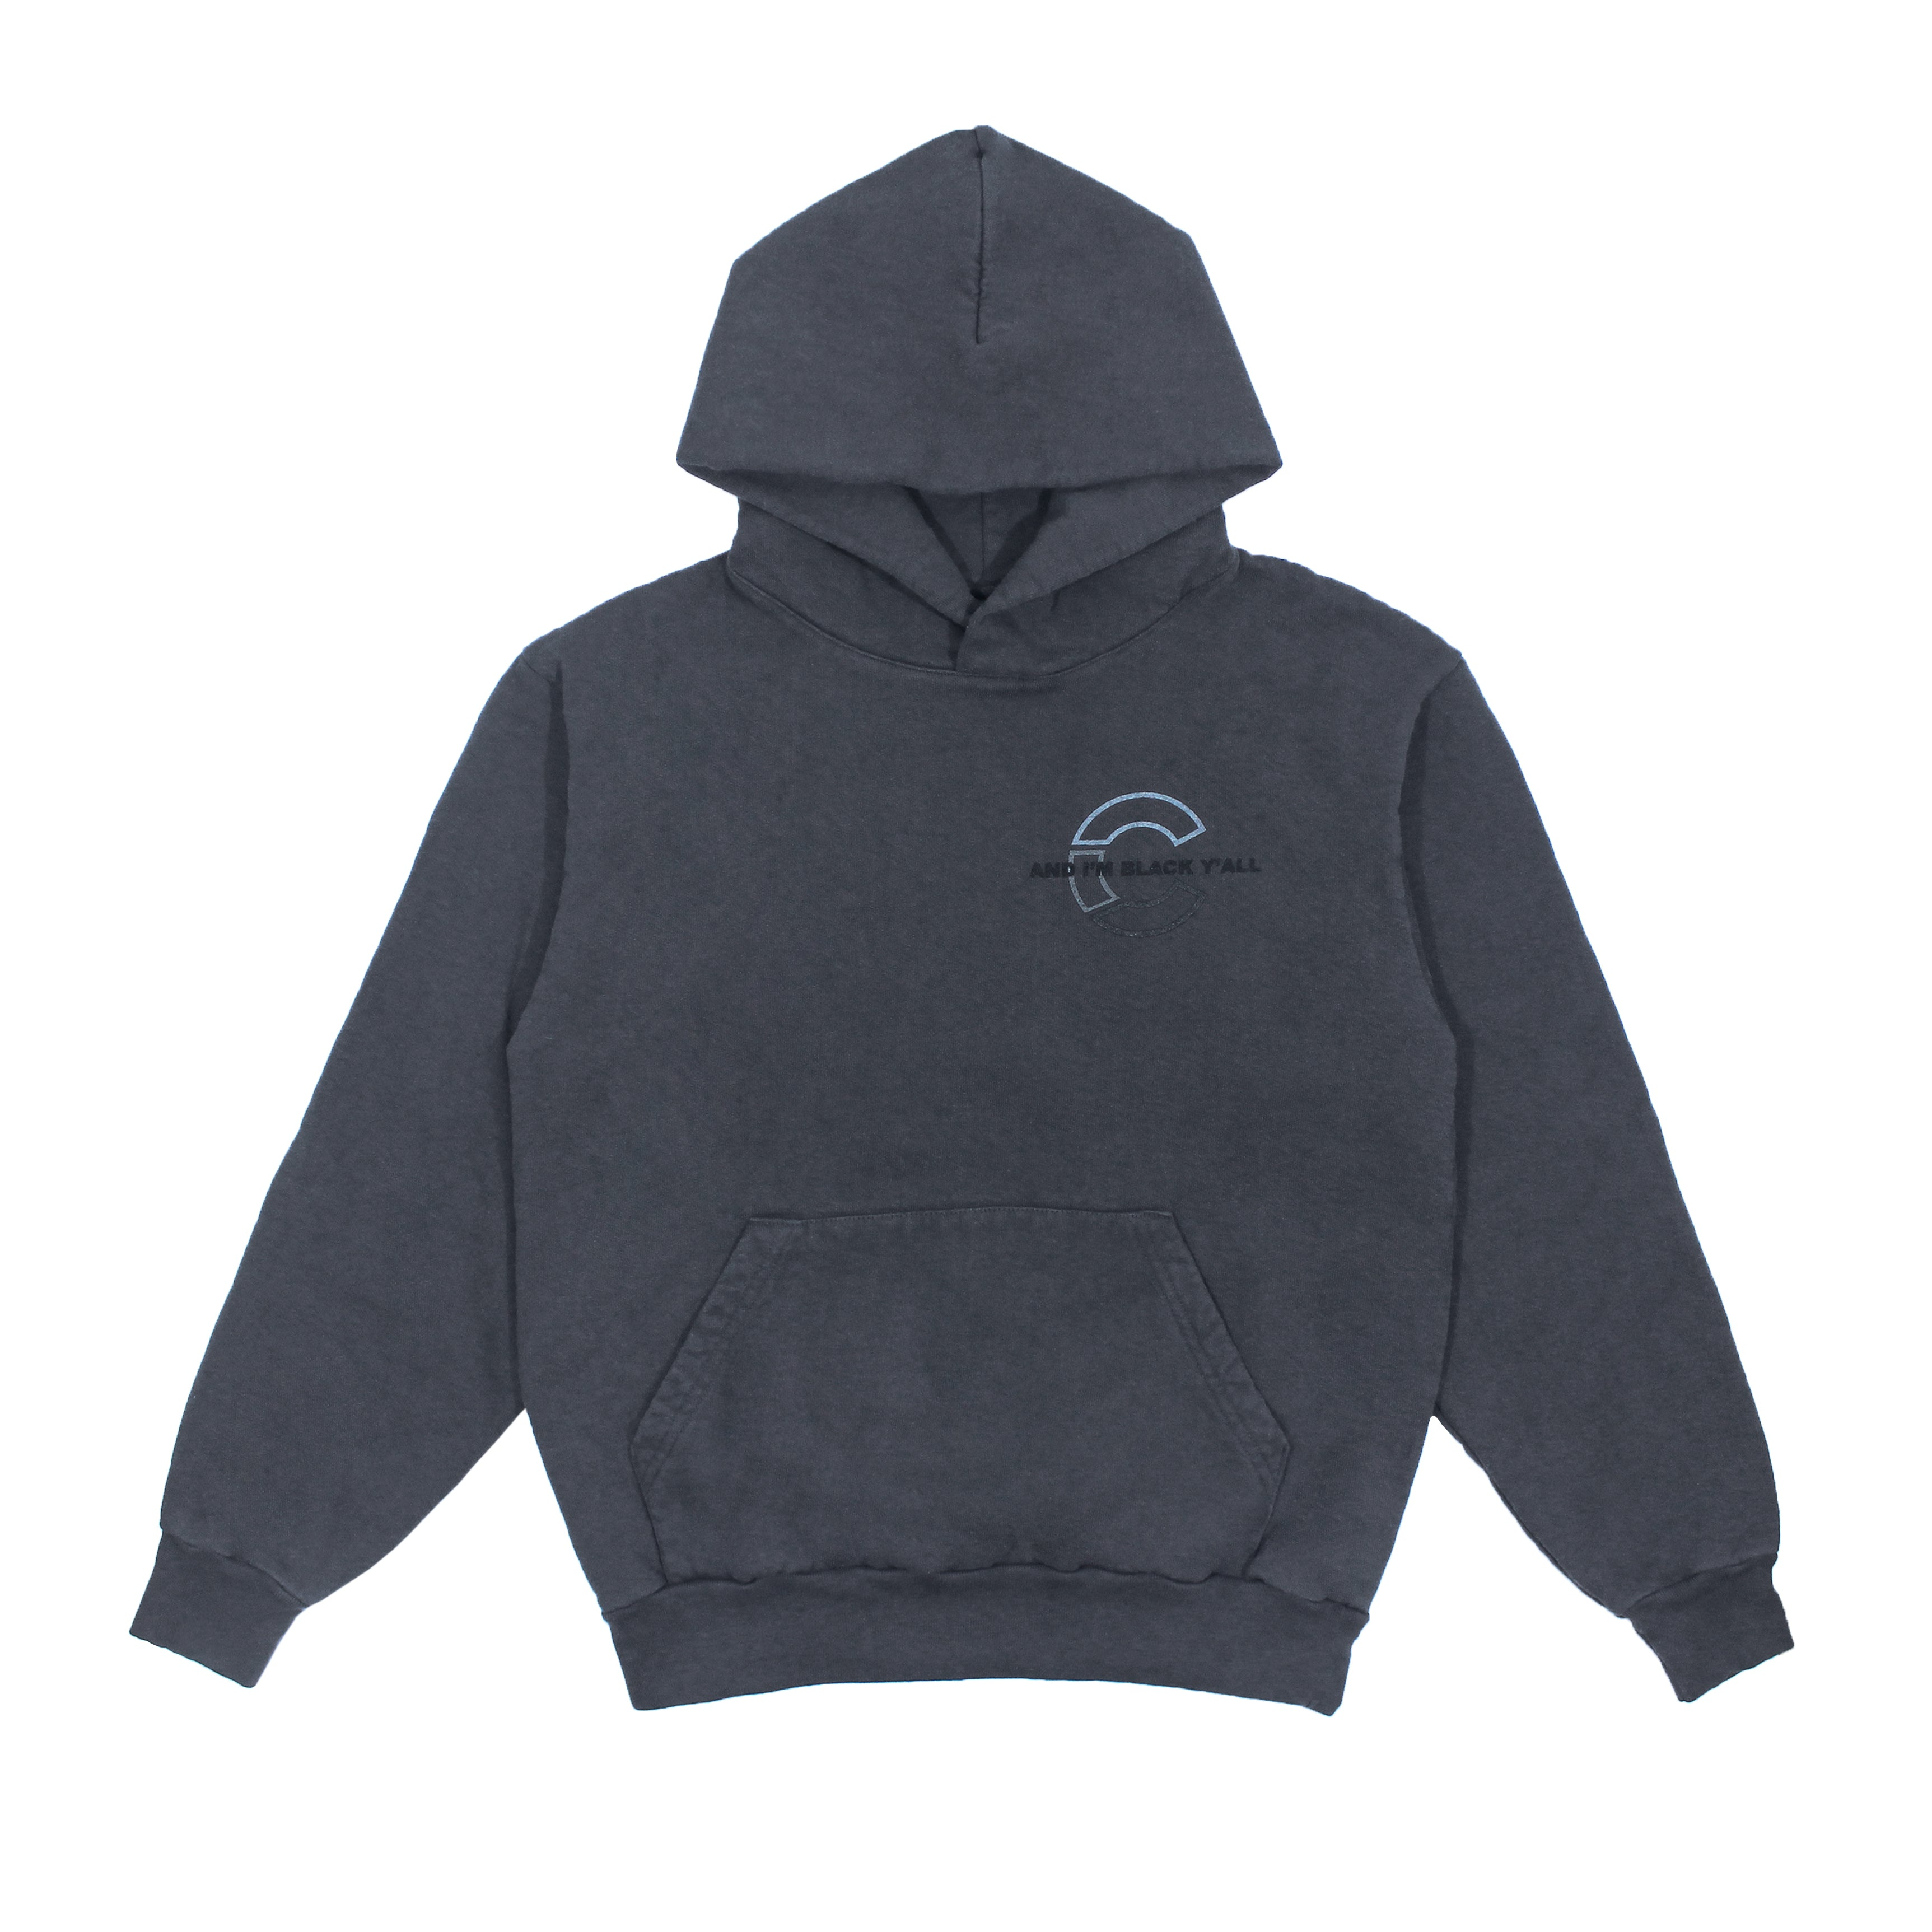 the CRATE l'm Black Y'all Hoody Dark Grey